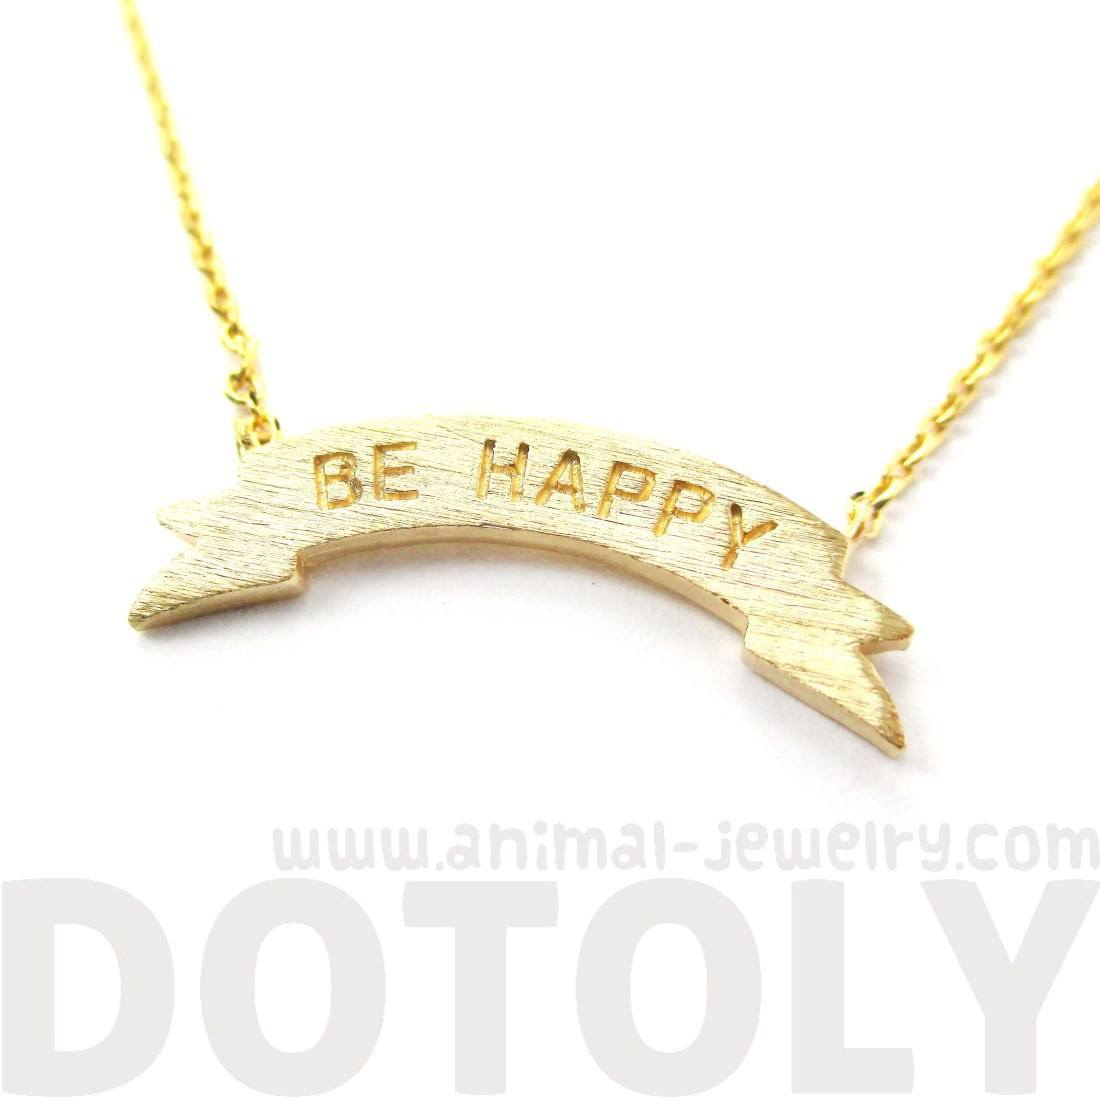 Engraved Be Happy Mini Banner Bar Motivational Charm Necklace in Gold